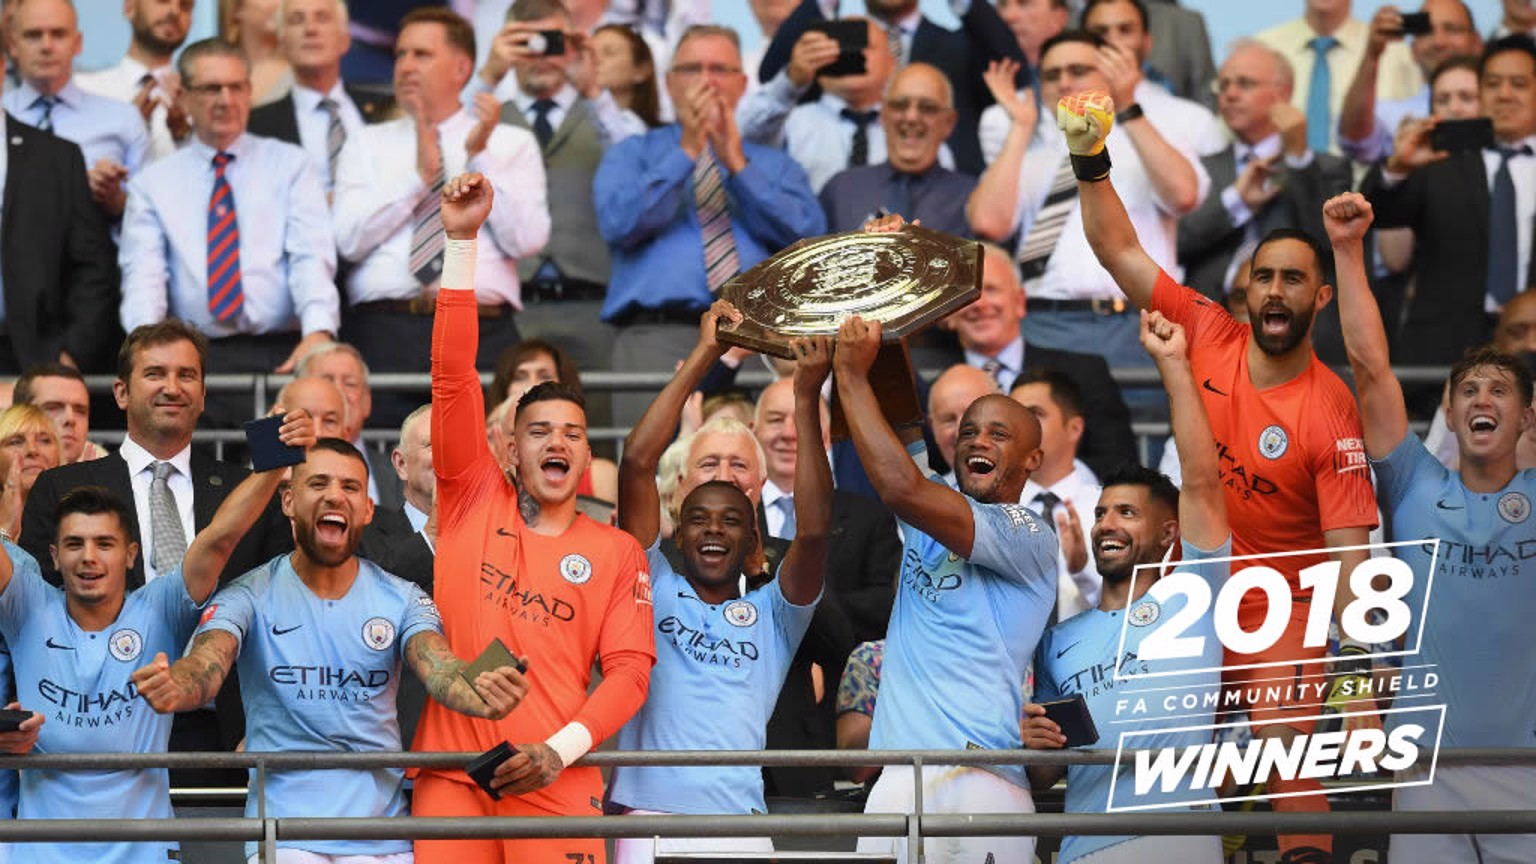 SILVERWARE! City celebrate Community Shield success